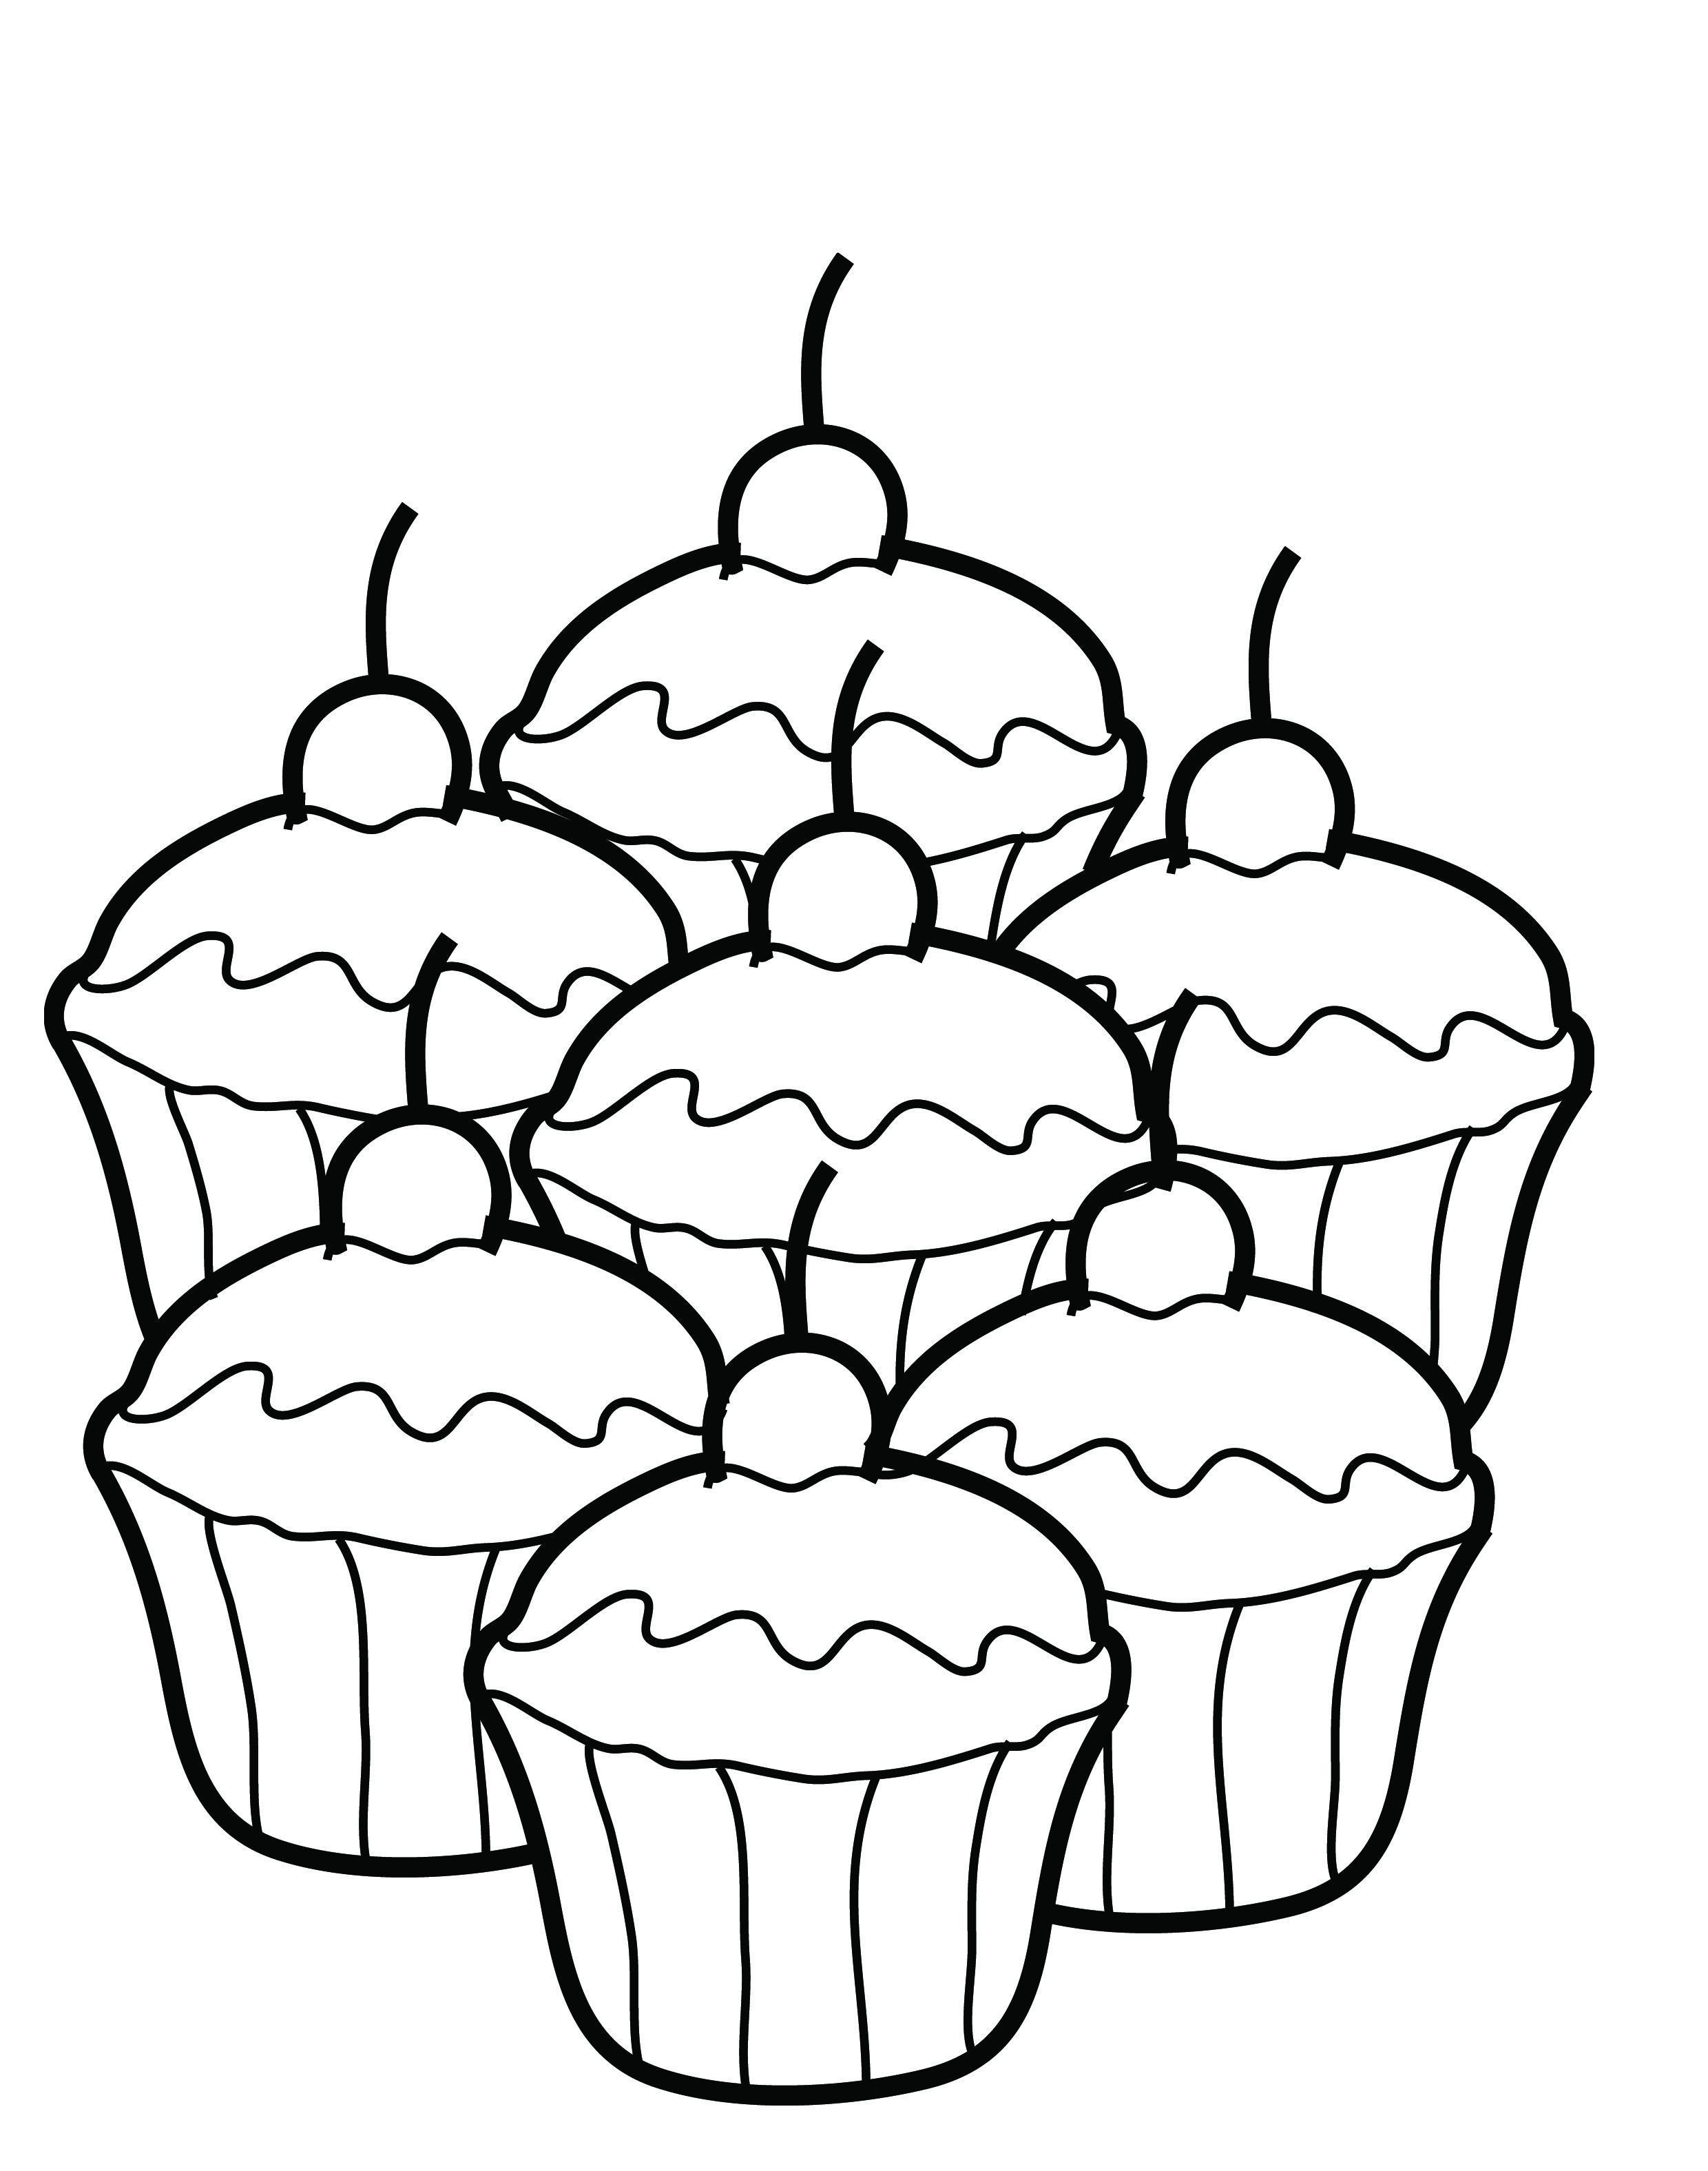 Free Printable Images Of Cupcakes : Free Printable Cupcake Coloring Pages For Kids